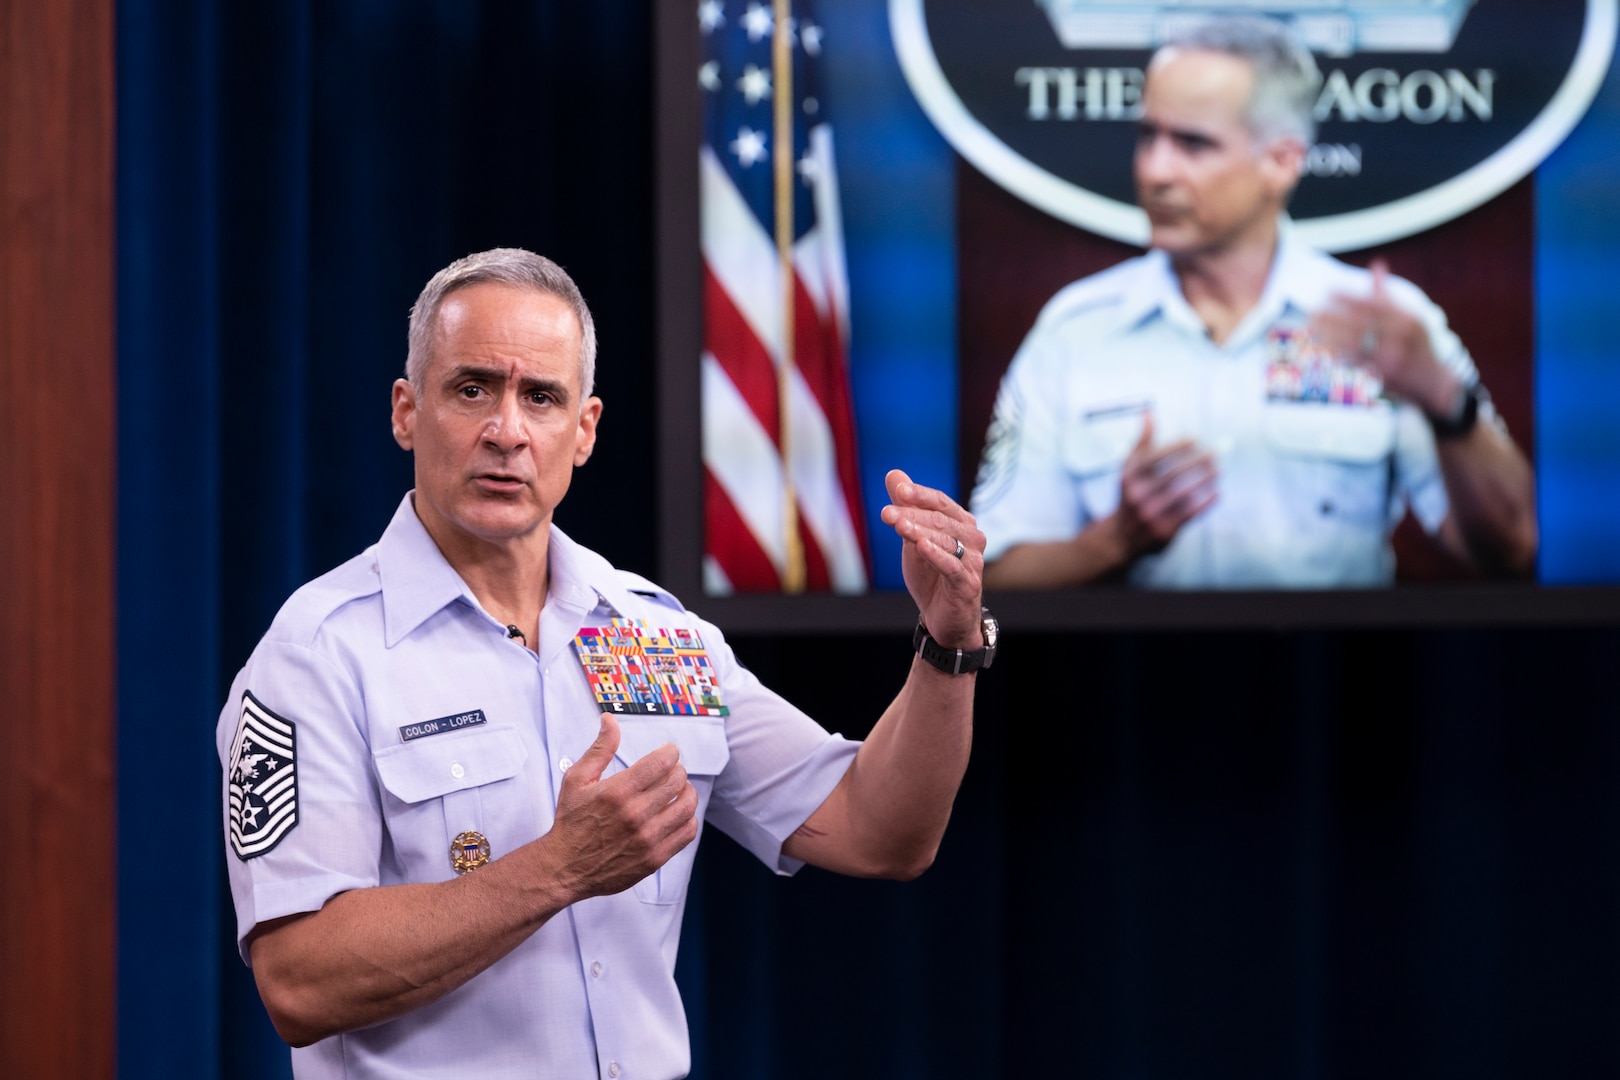 DOD Crowdsources Efforts to Promote Diversity, Inclusion